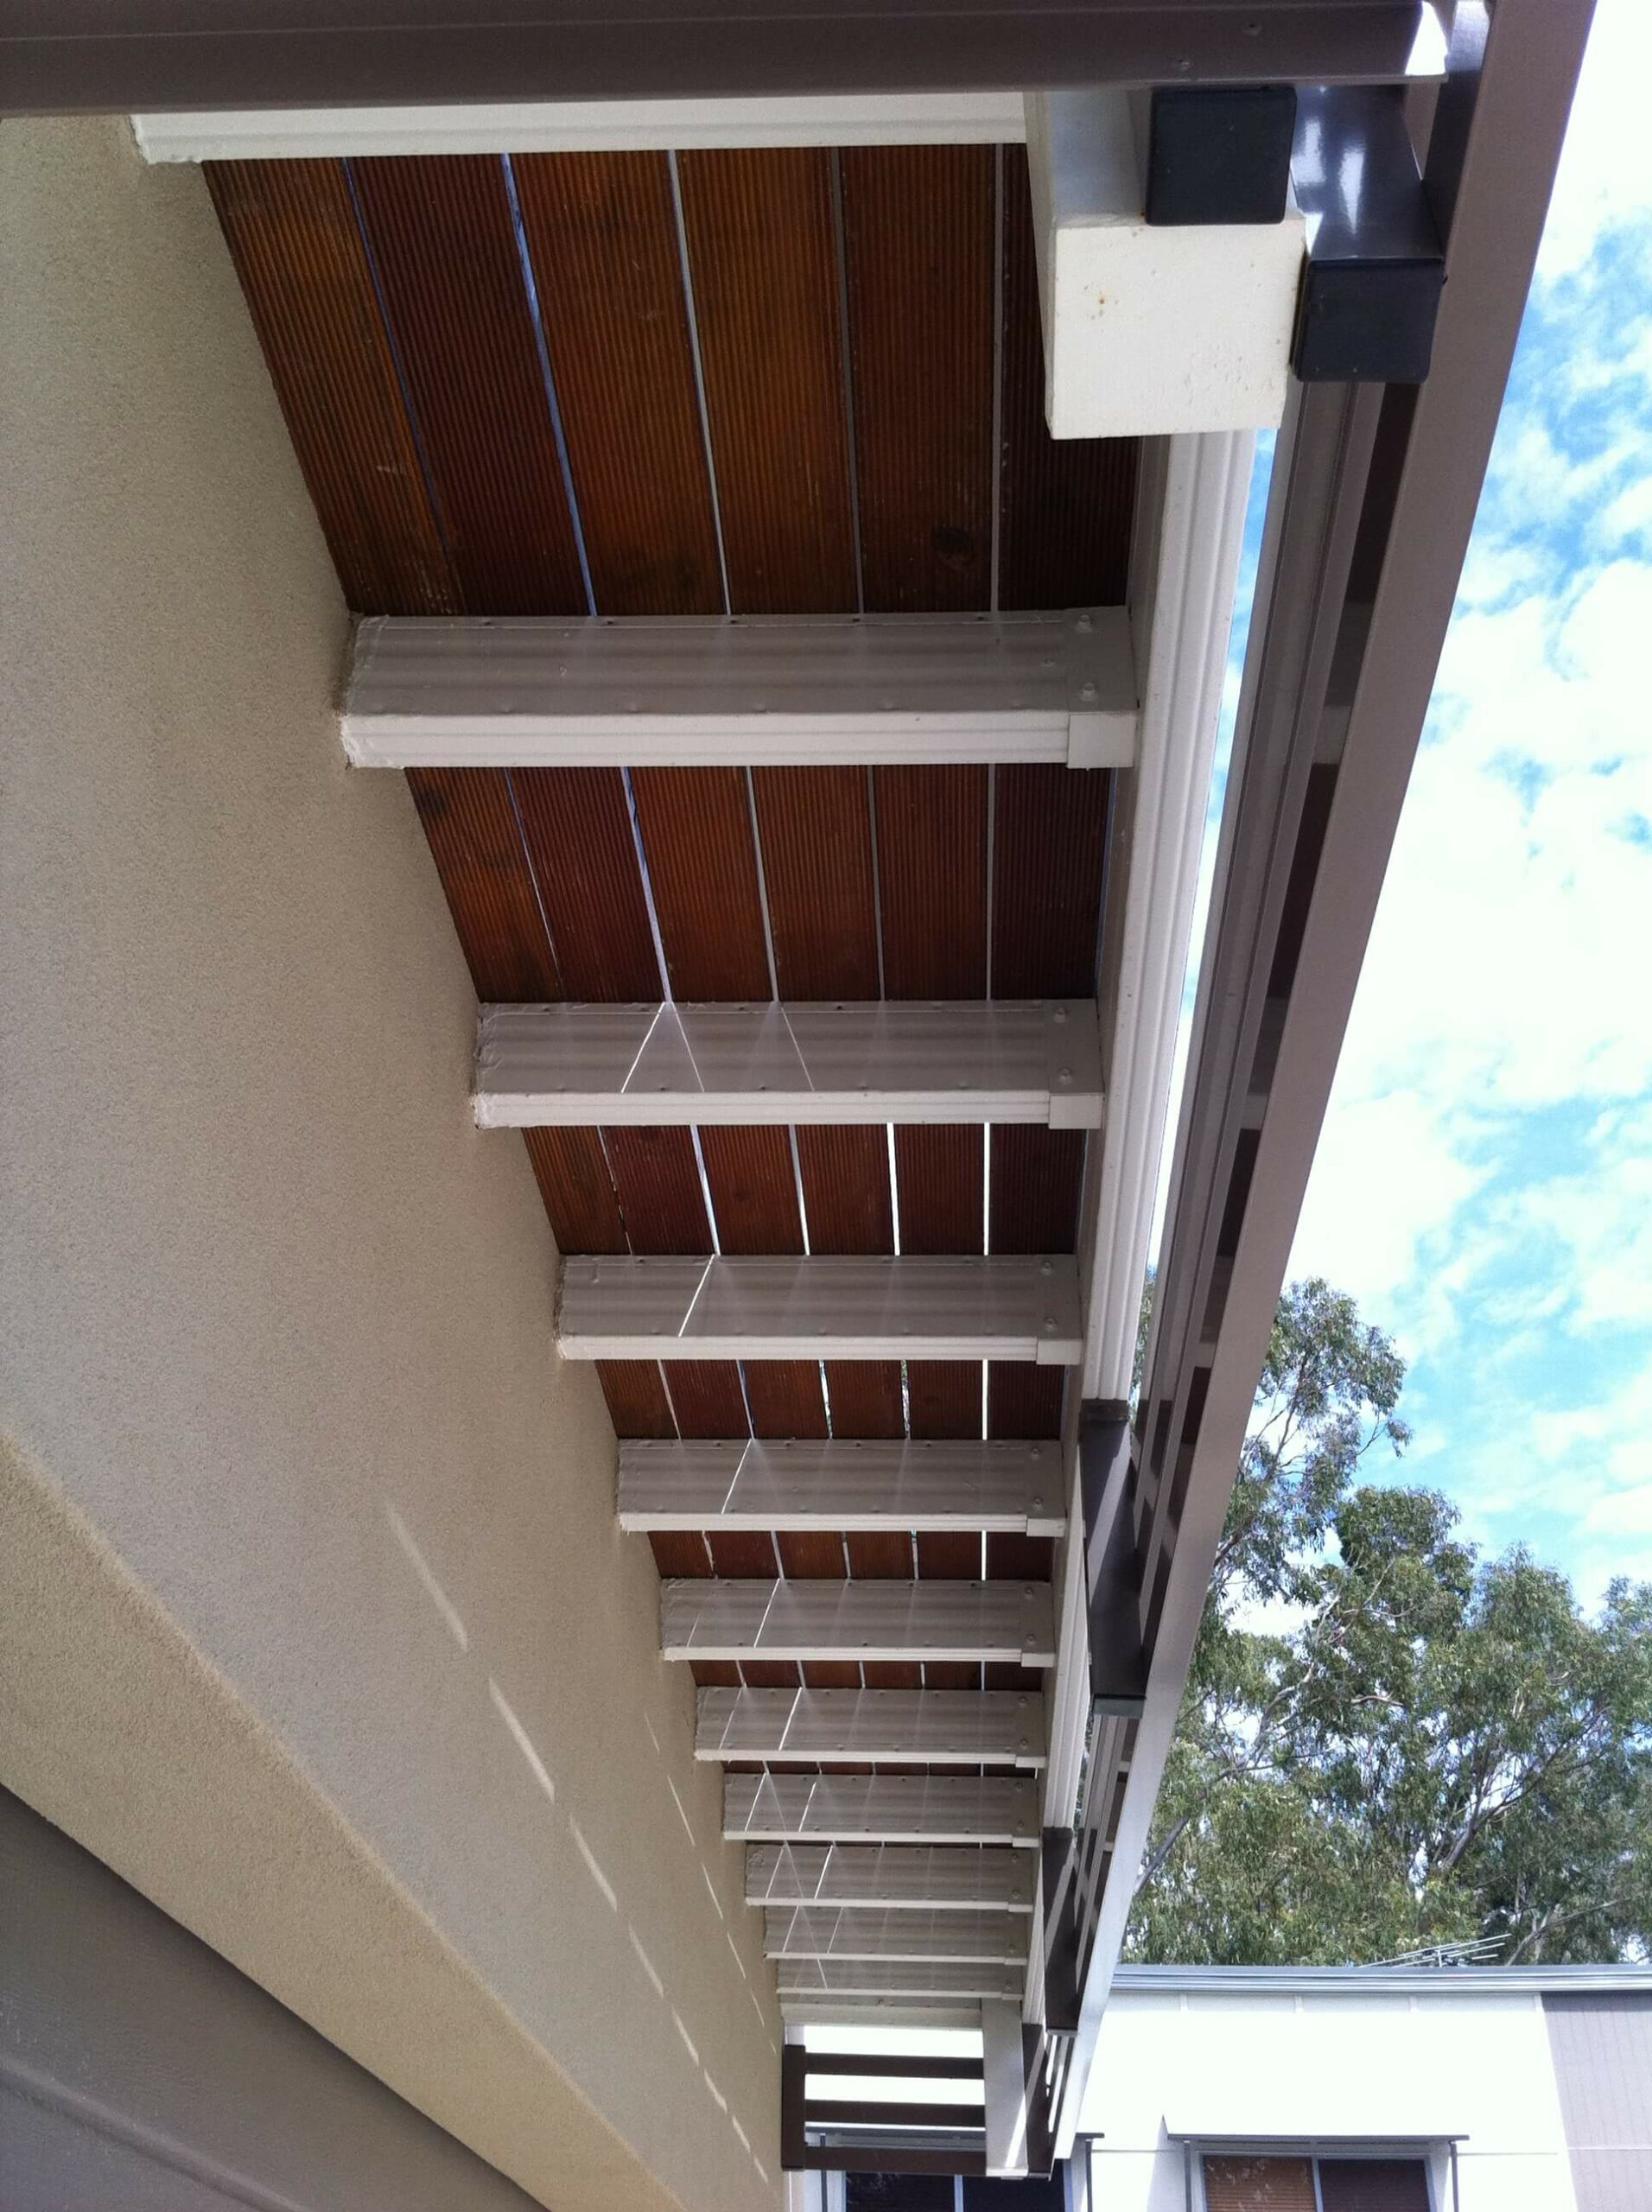 Cantilevered balcony with powdercoated Boxspan frame